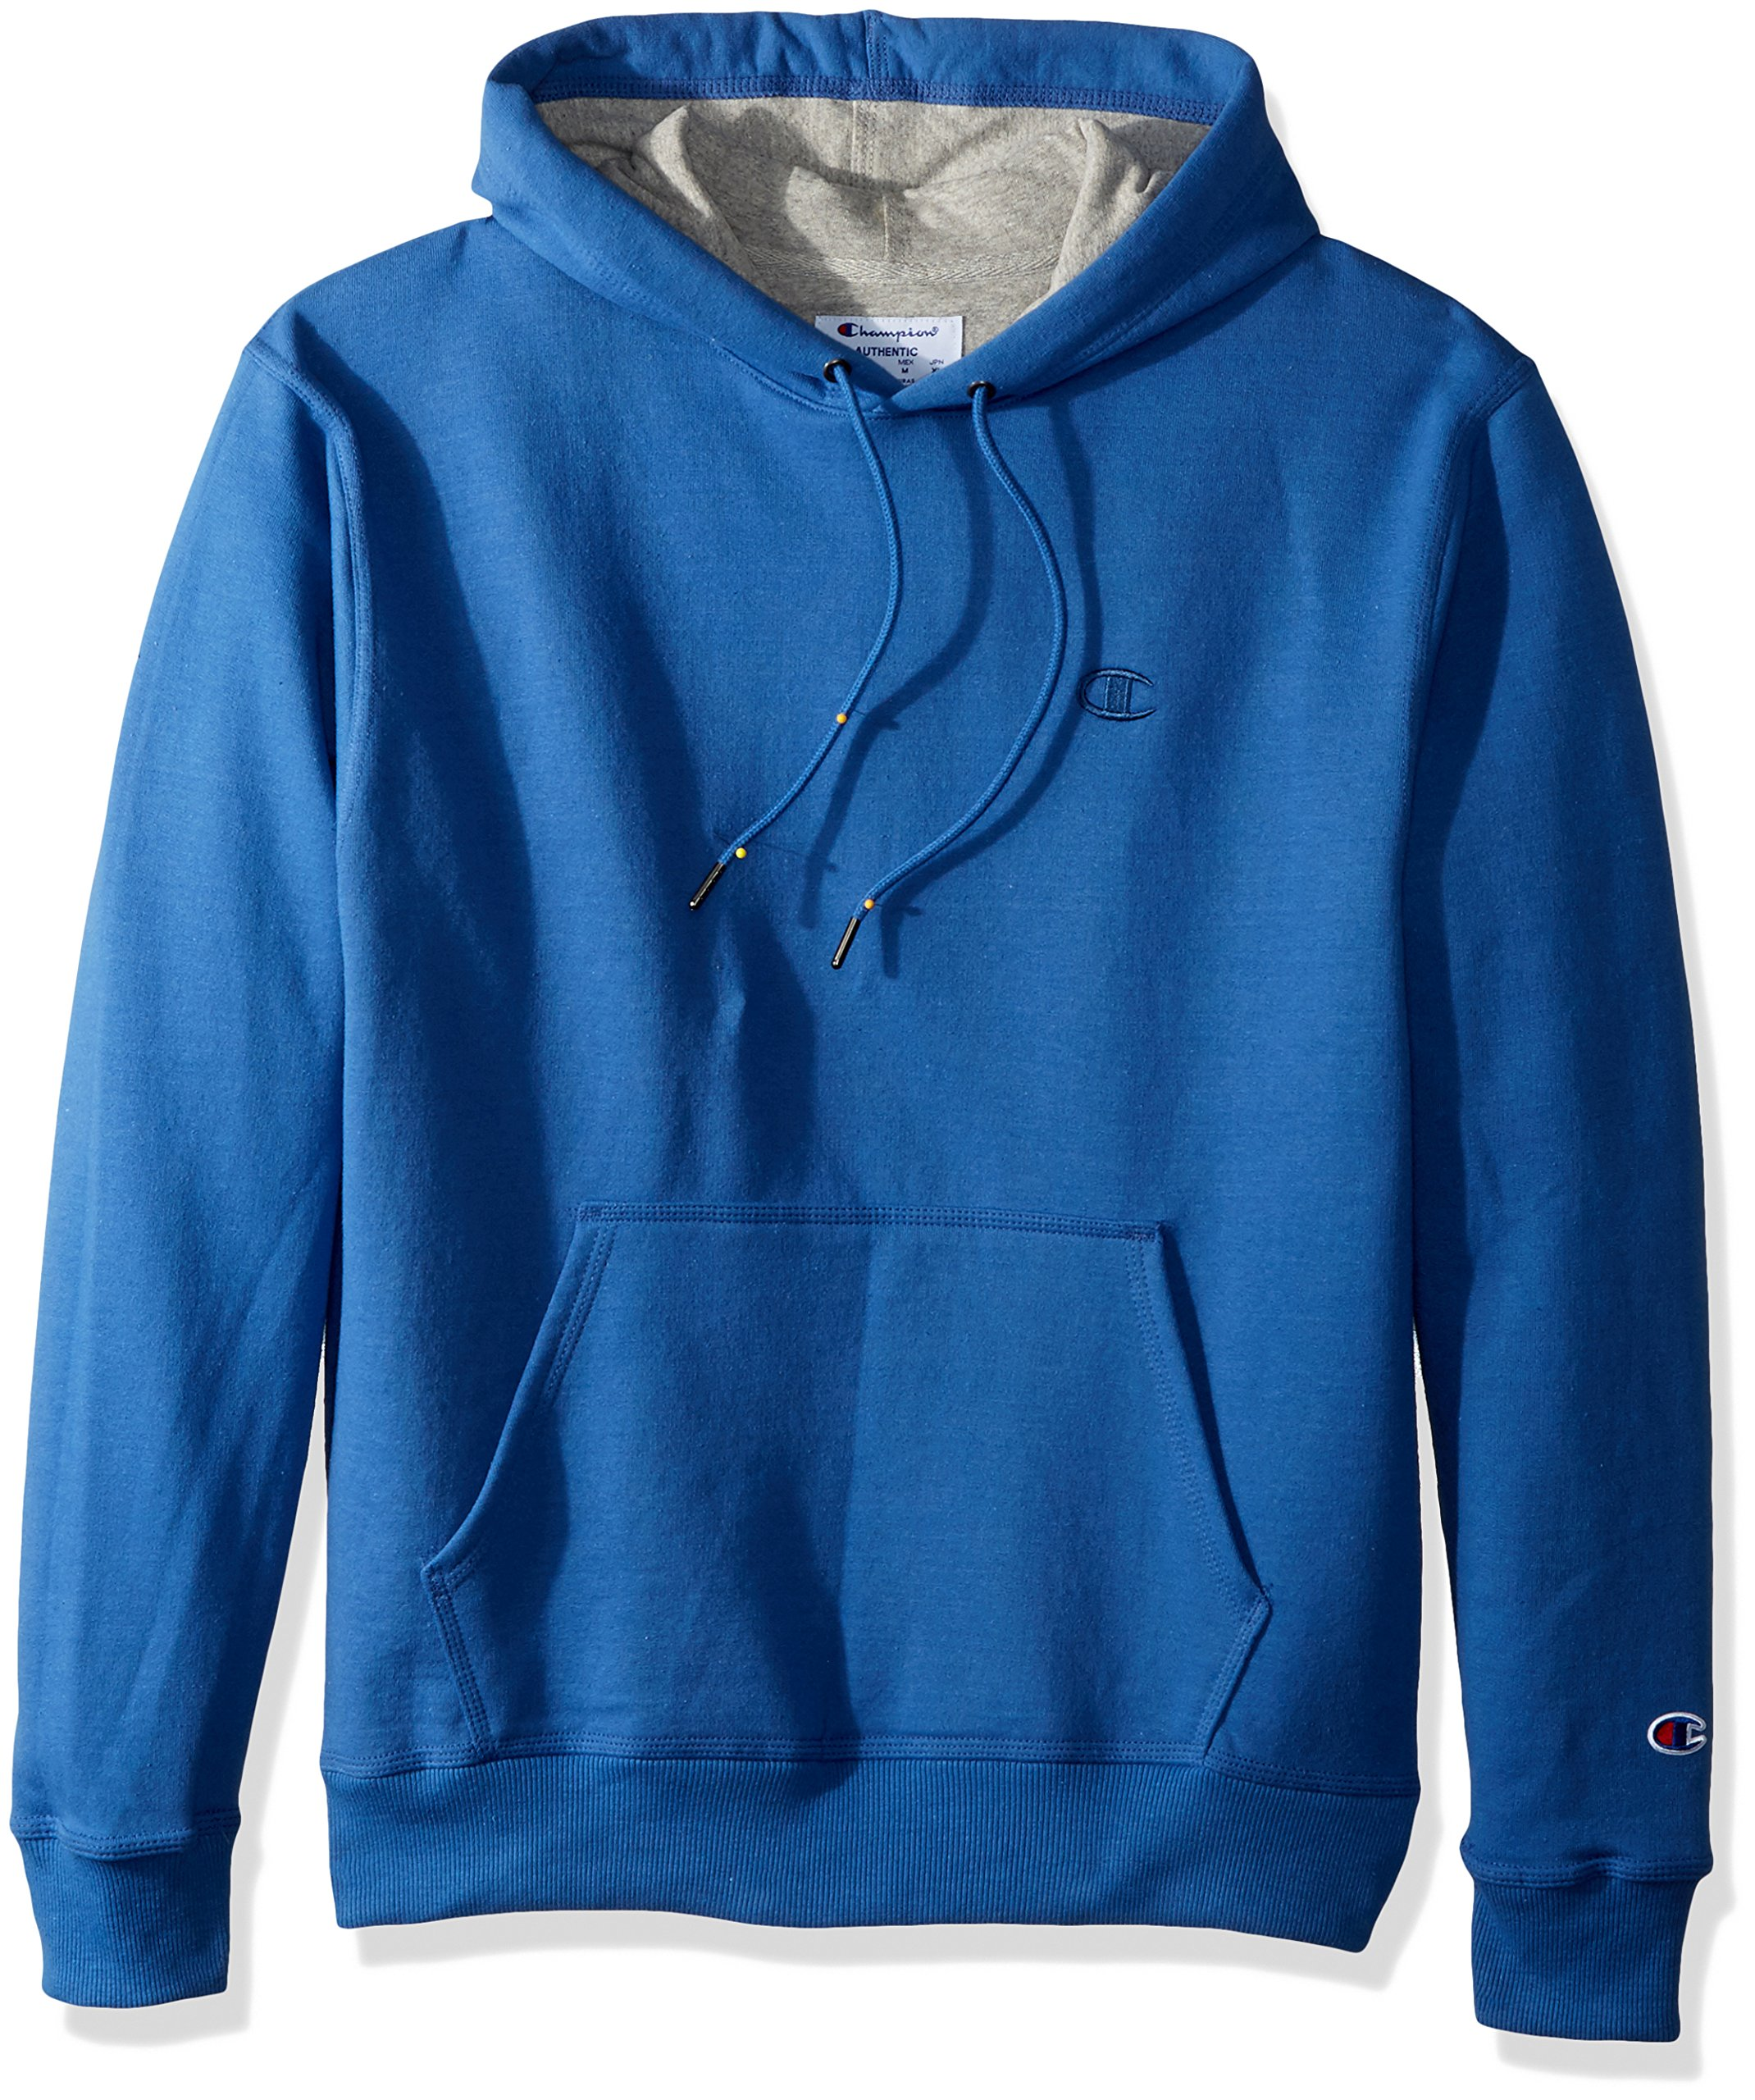 Champion Men's Powerblend Pullover Hoodie, Honorable Blue, 2X Large by Champion